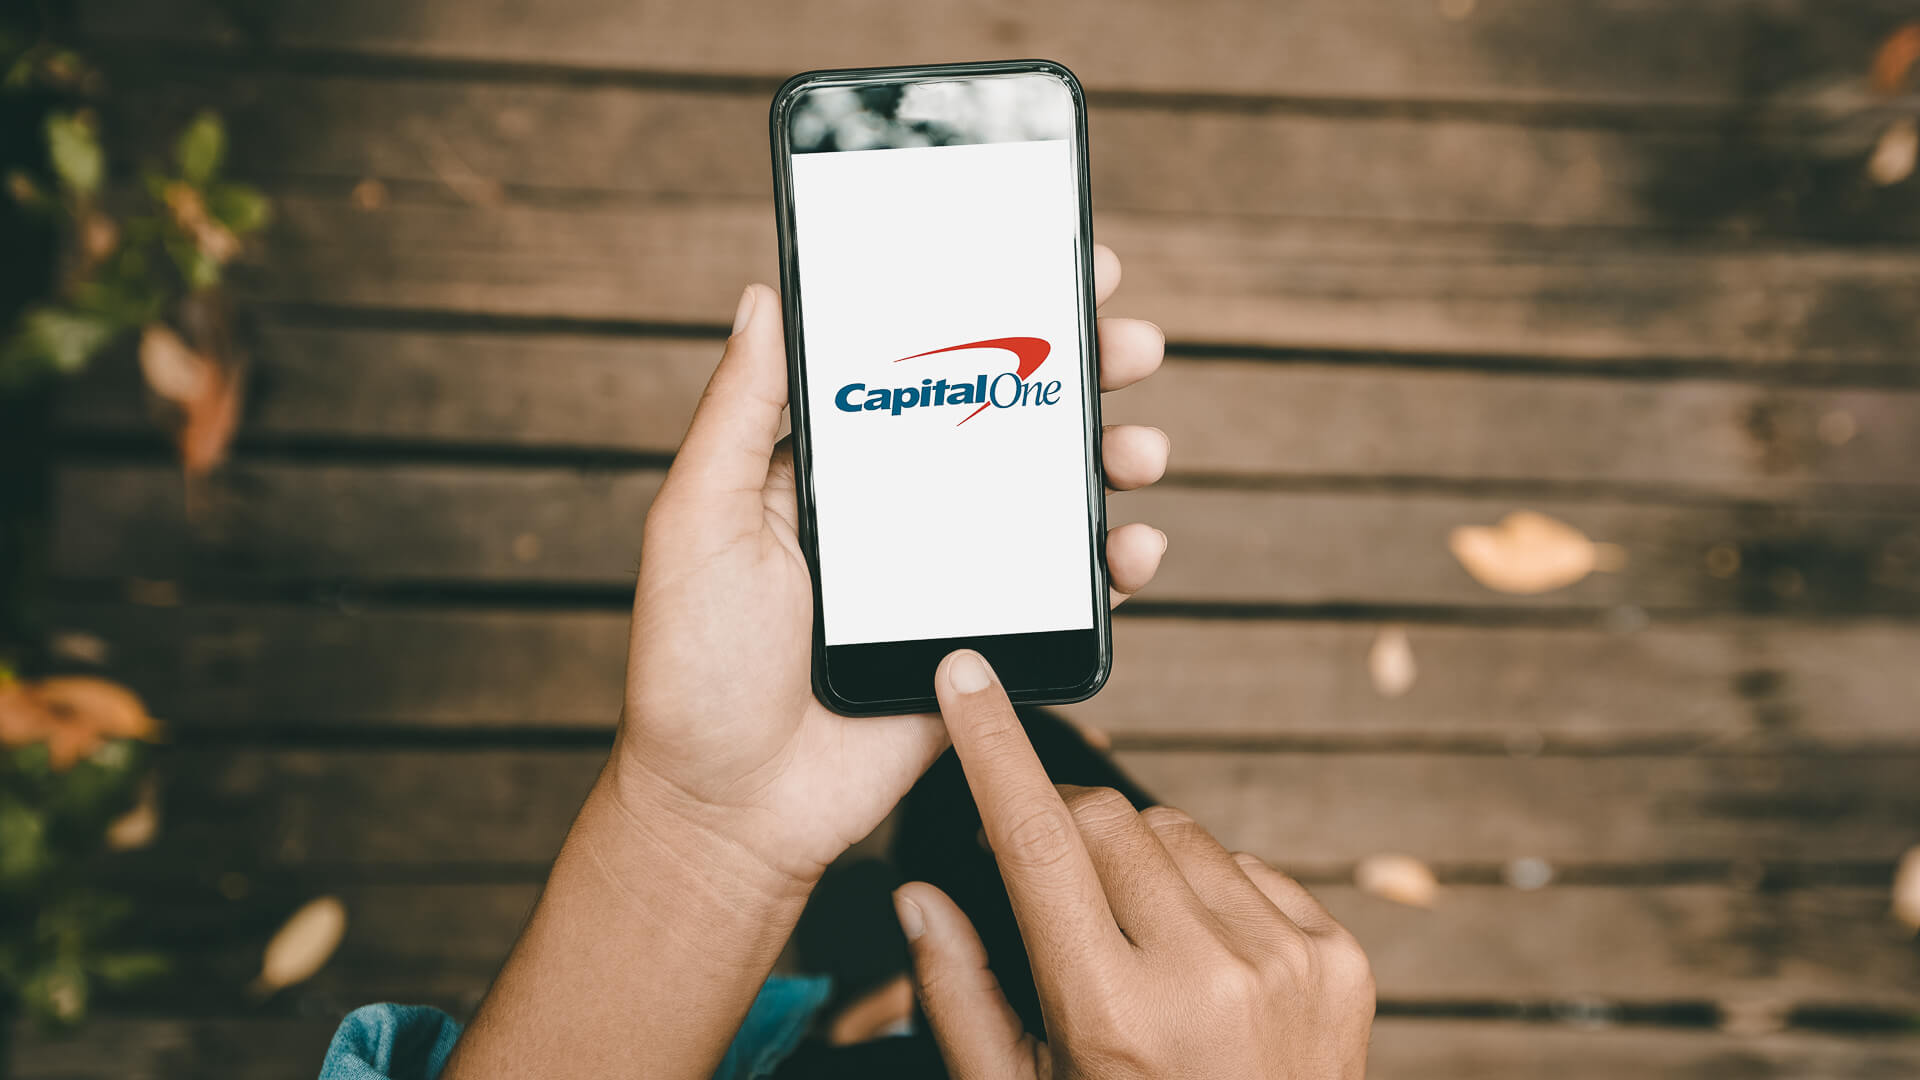 Capital One phone app